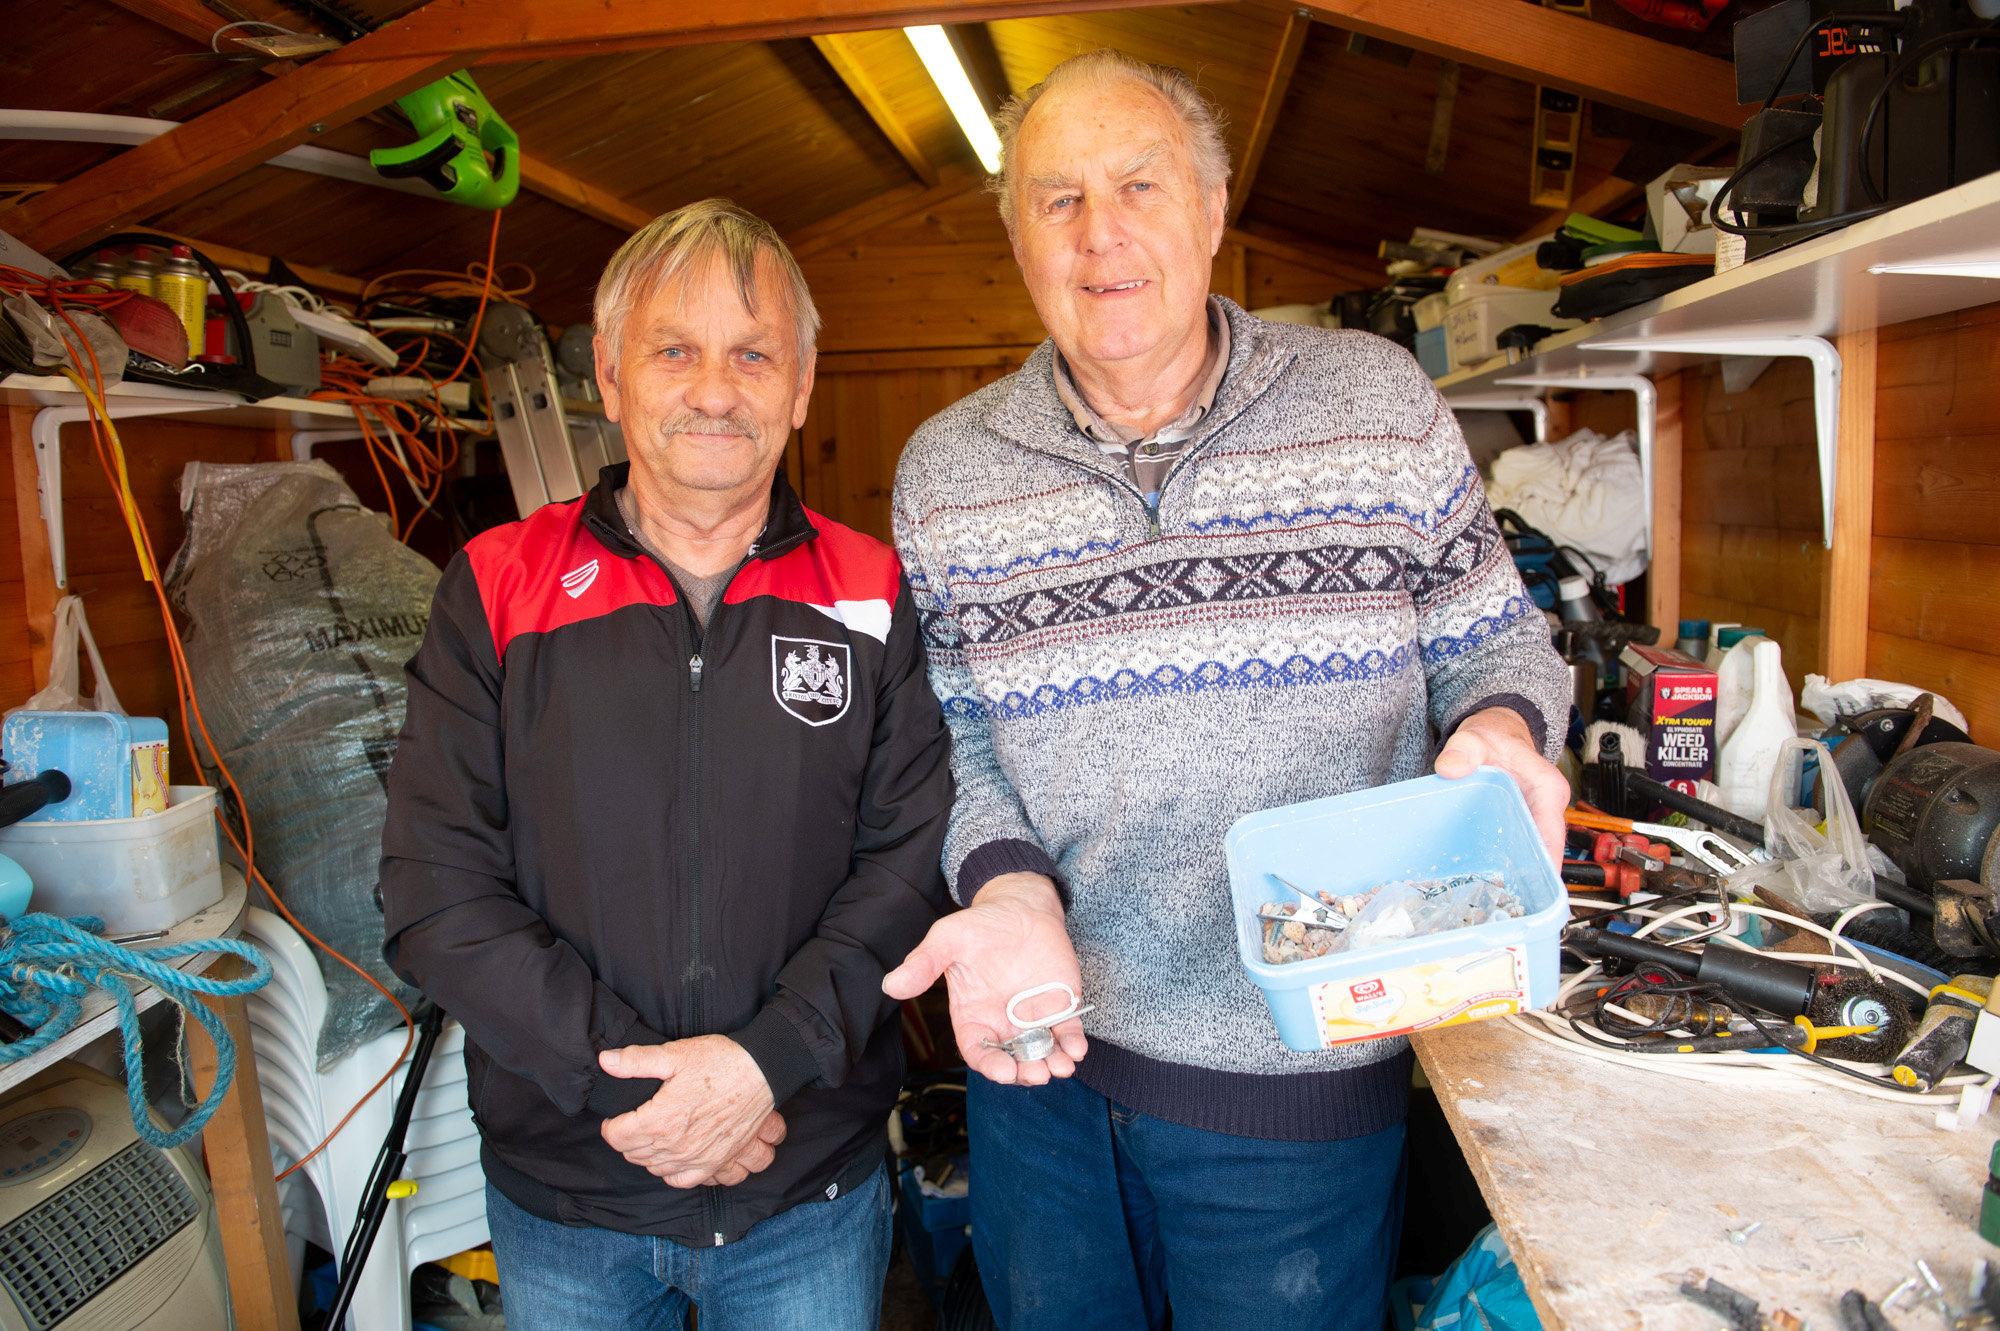 The two men were baffled when they found a mouse had been tidying the shed overnight. Credit: SWNS